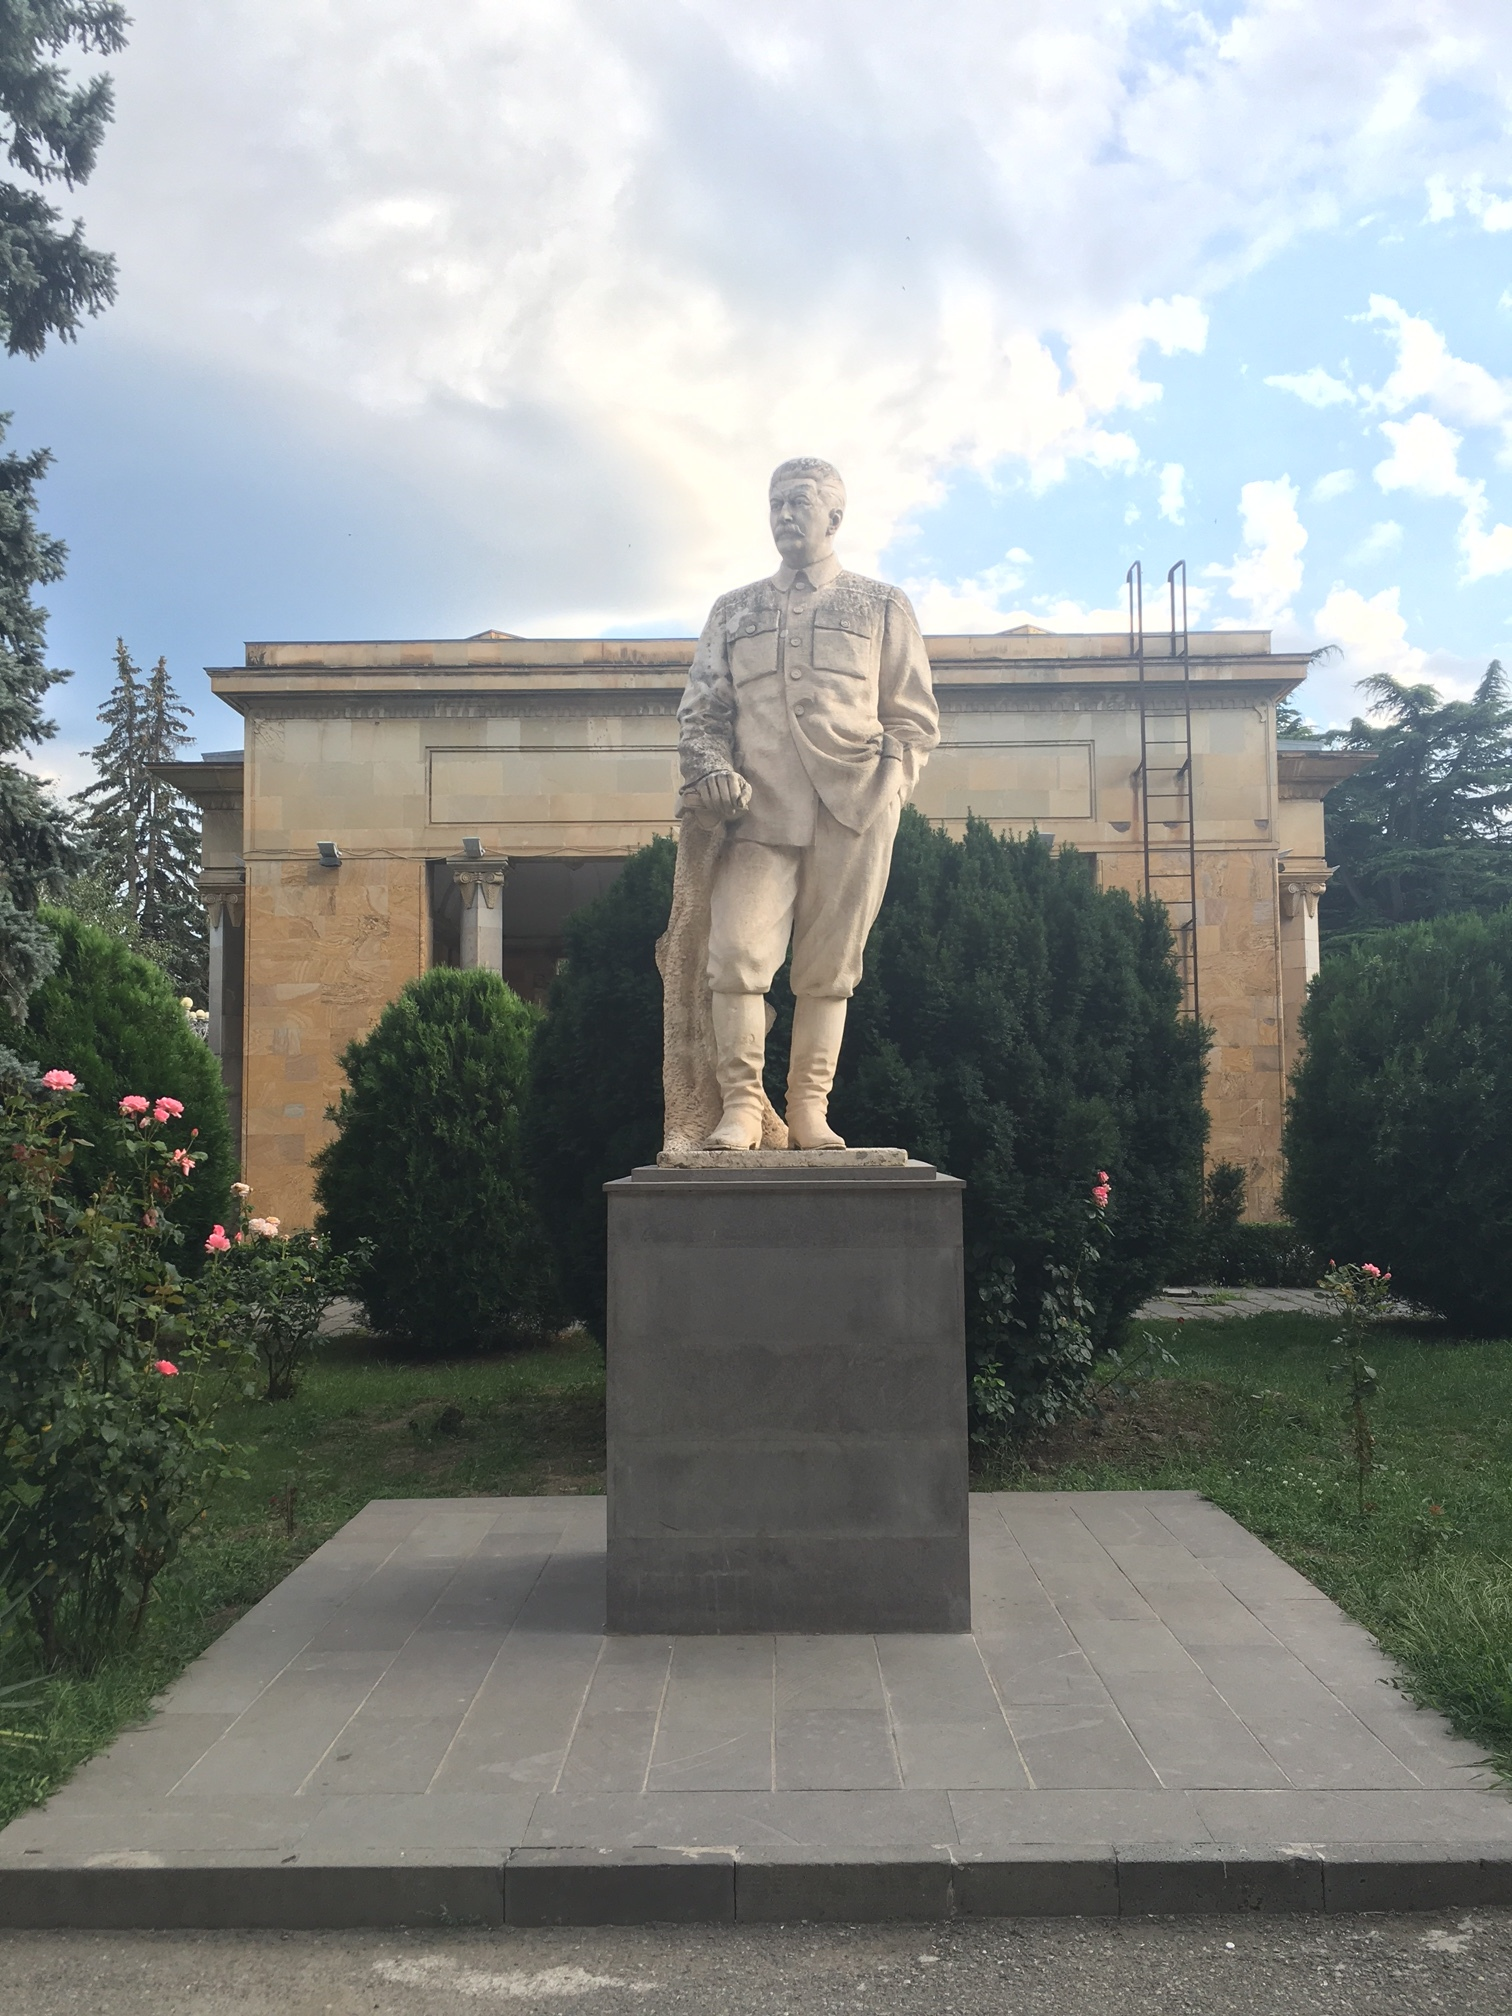 One of the last remaining statues of Stalin.